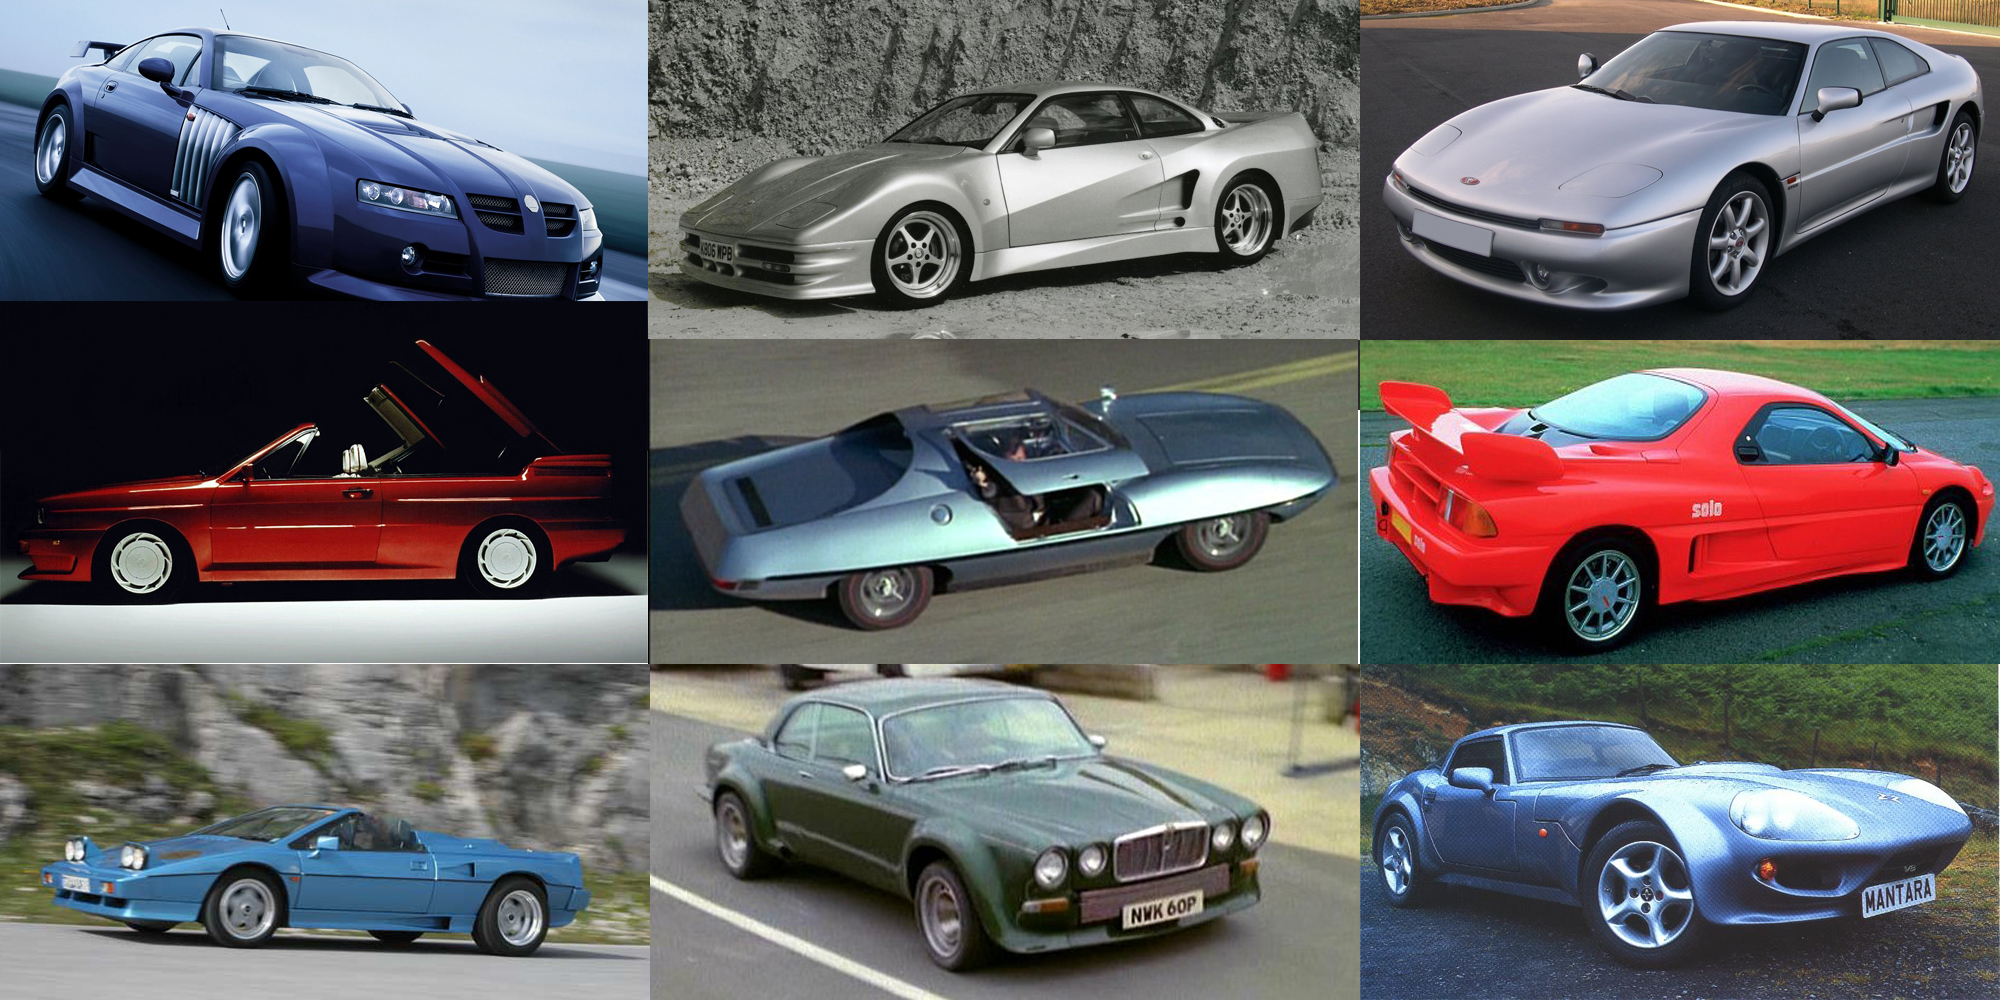 30 Most Obscure Cool Cars Ever! – Words from a Restless Mind